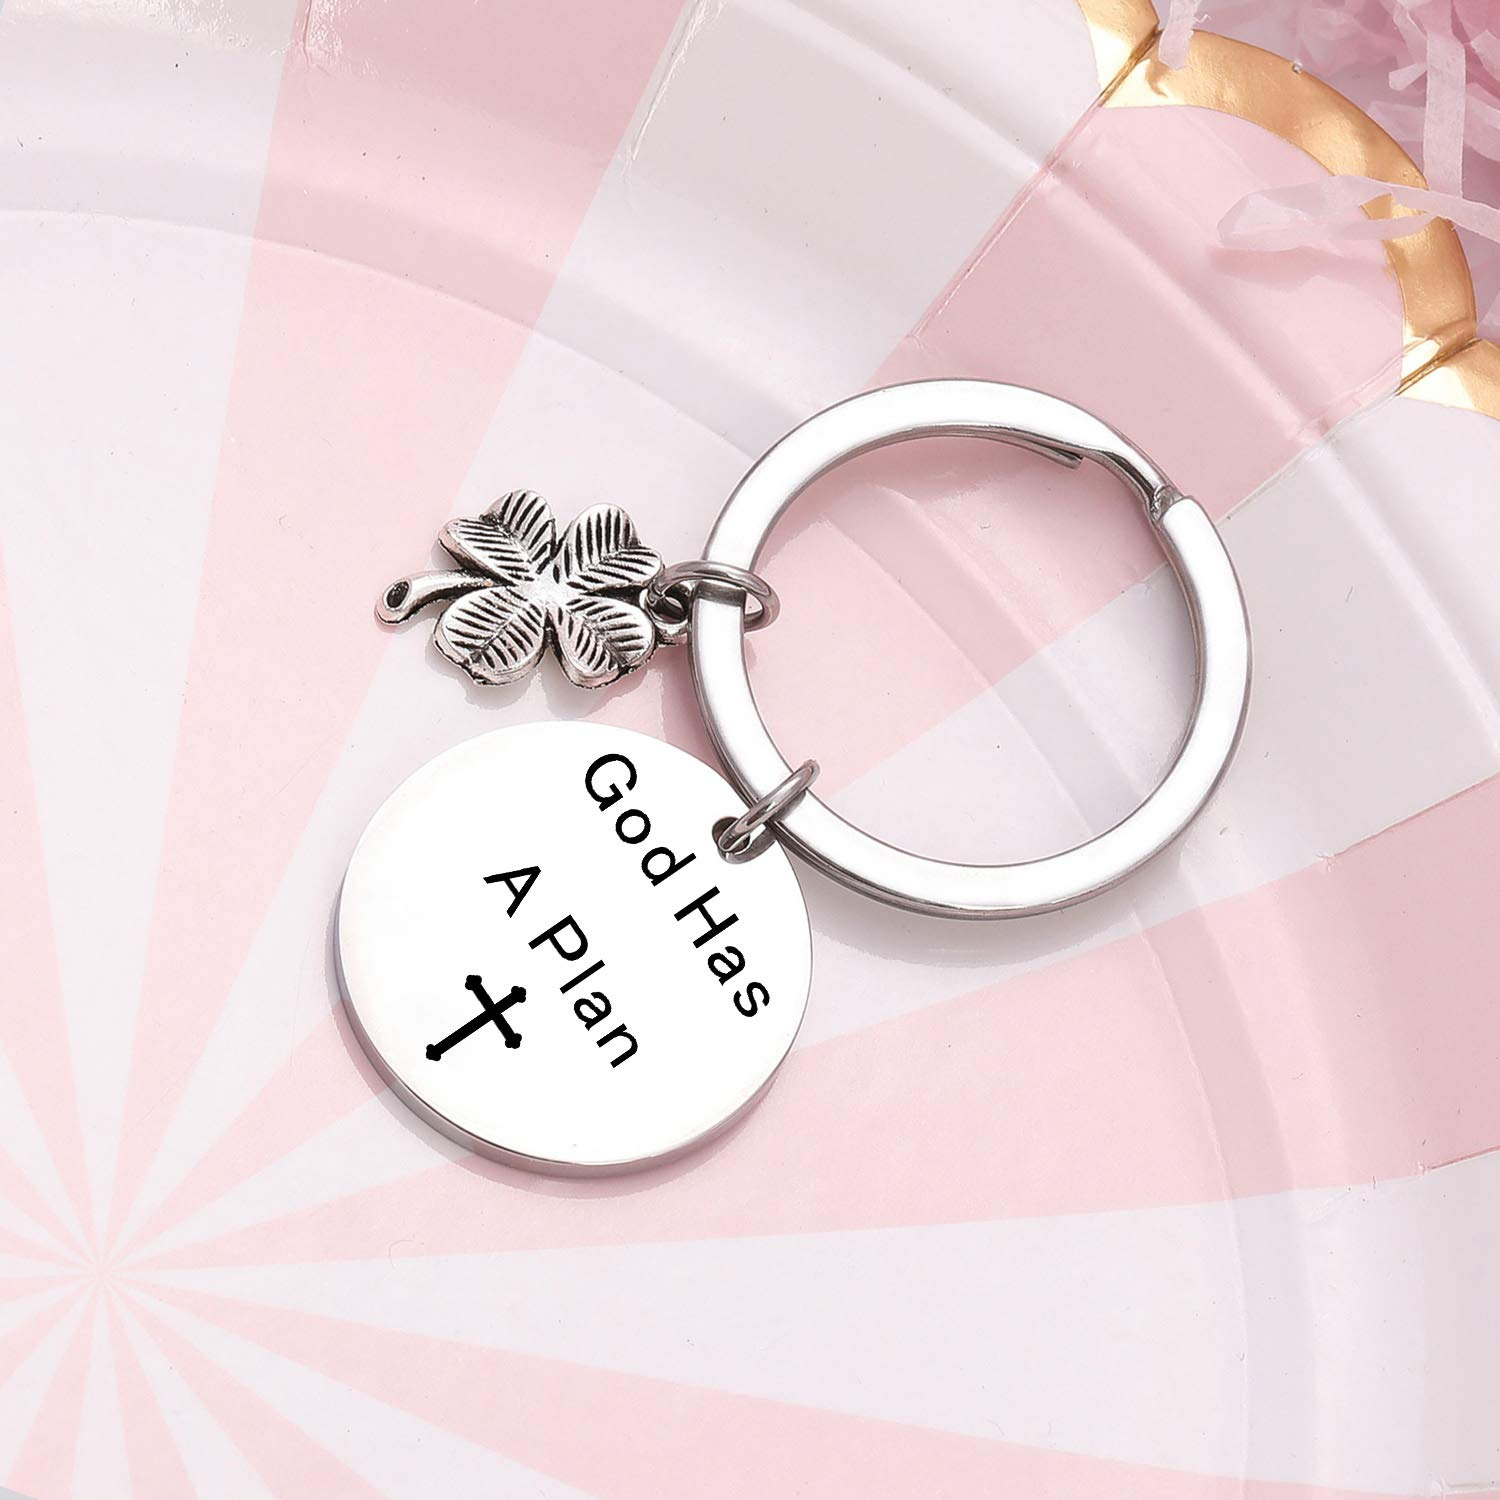 TzrNhm Blossom God Has a Plan Bracelet Jewelry Inspirational Daily Reminder Bangle for Women Men